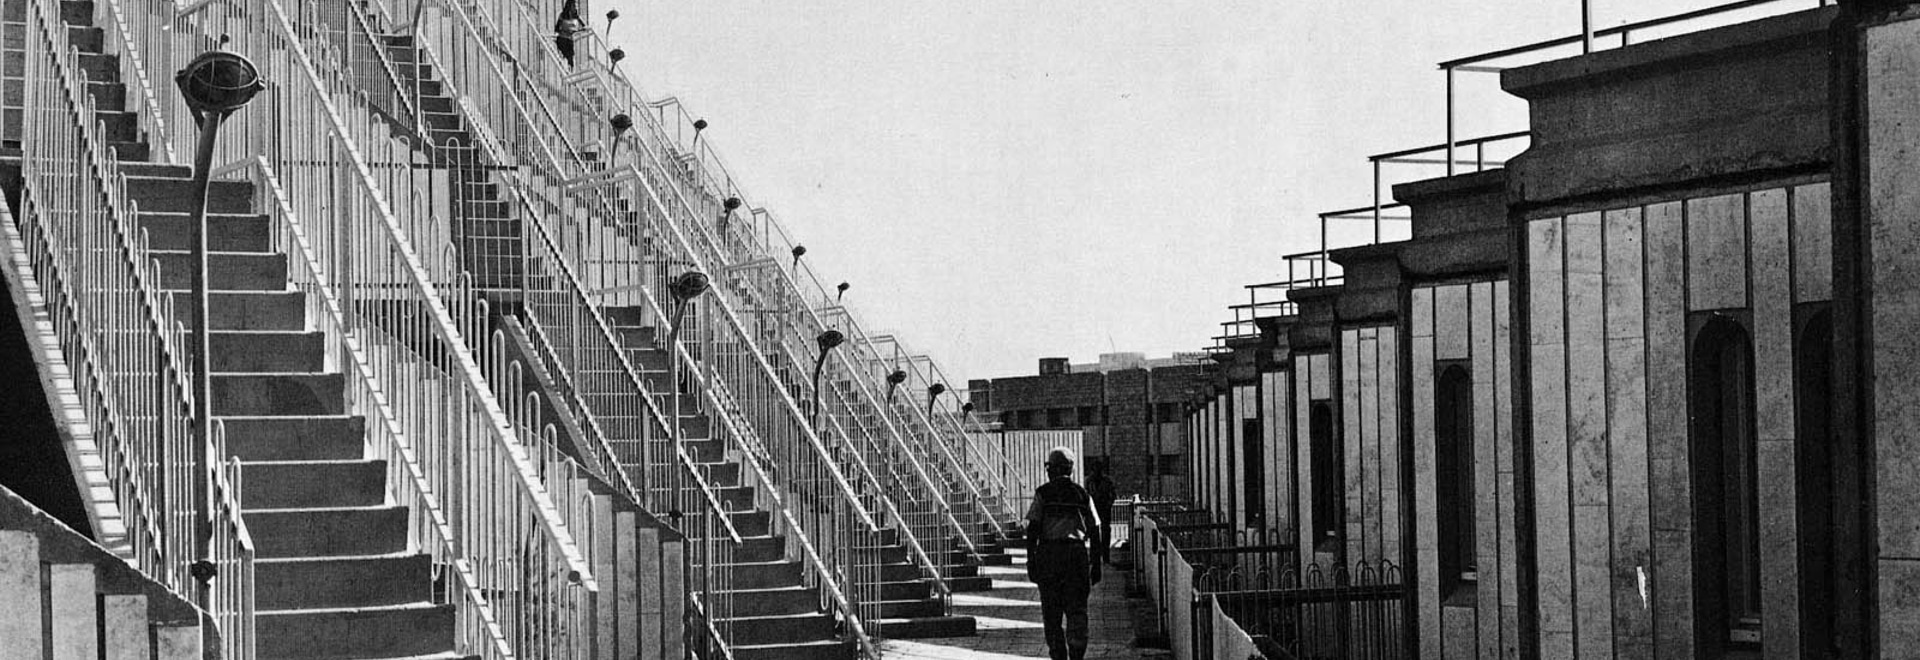 Resisting Israeli Postmodernism: Gilo Housing in Jerusalem by Eldar and Arieh Sharon. (Image courtesy Arieh Sharon office)